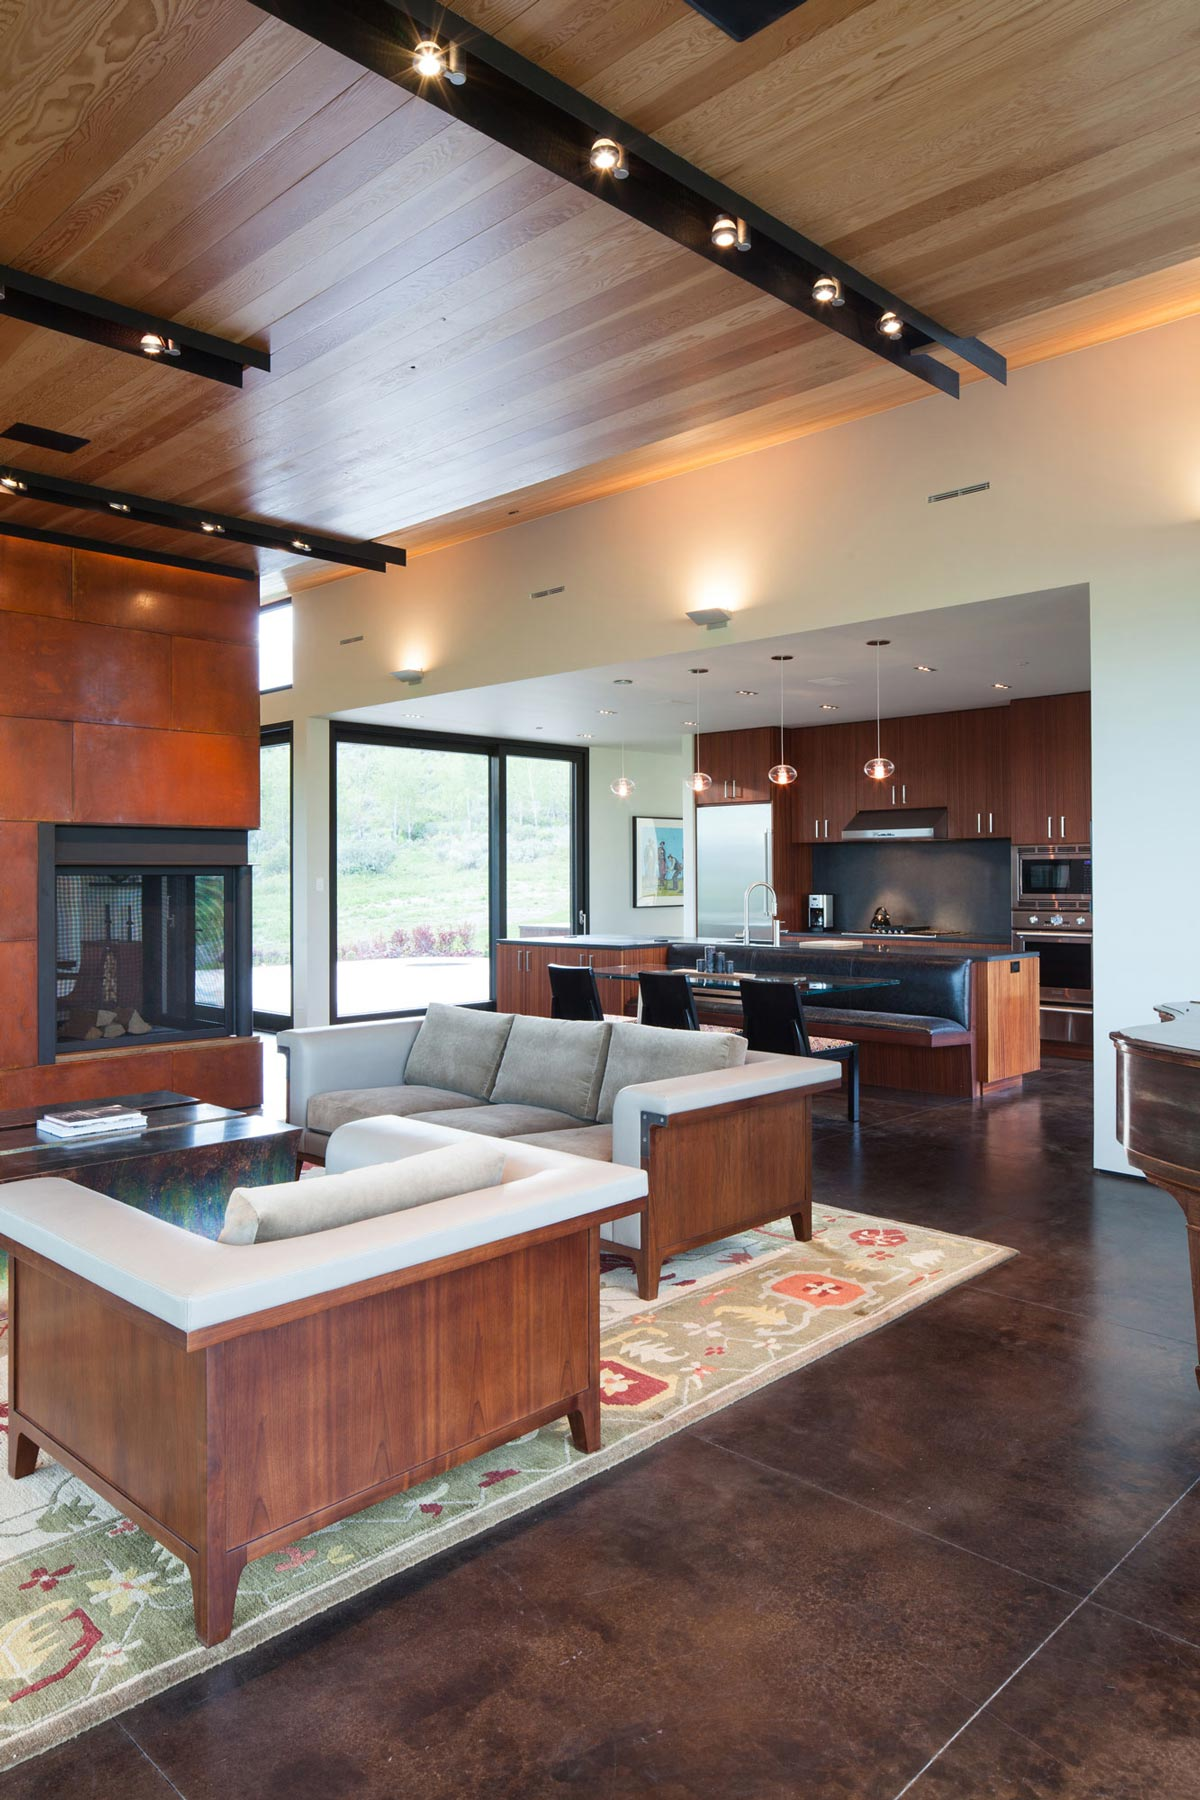 Sofas, Fireplace, Living Space, Breakfast Table, Hillside House in Jackson, Wyoming